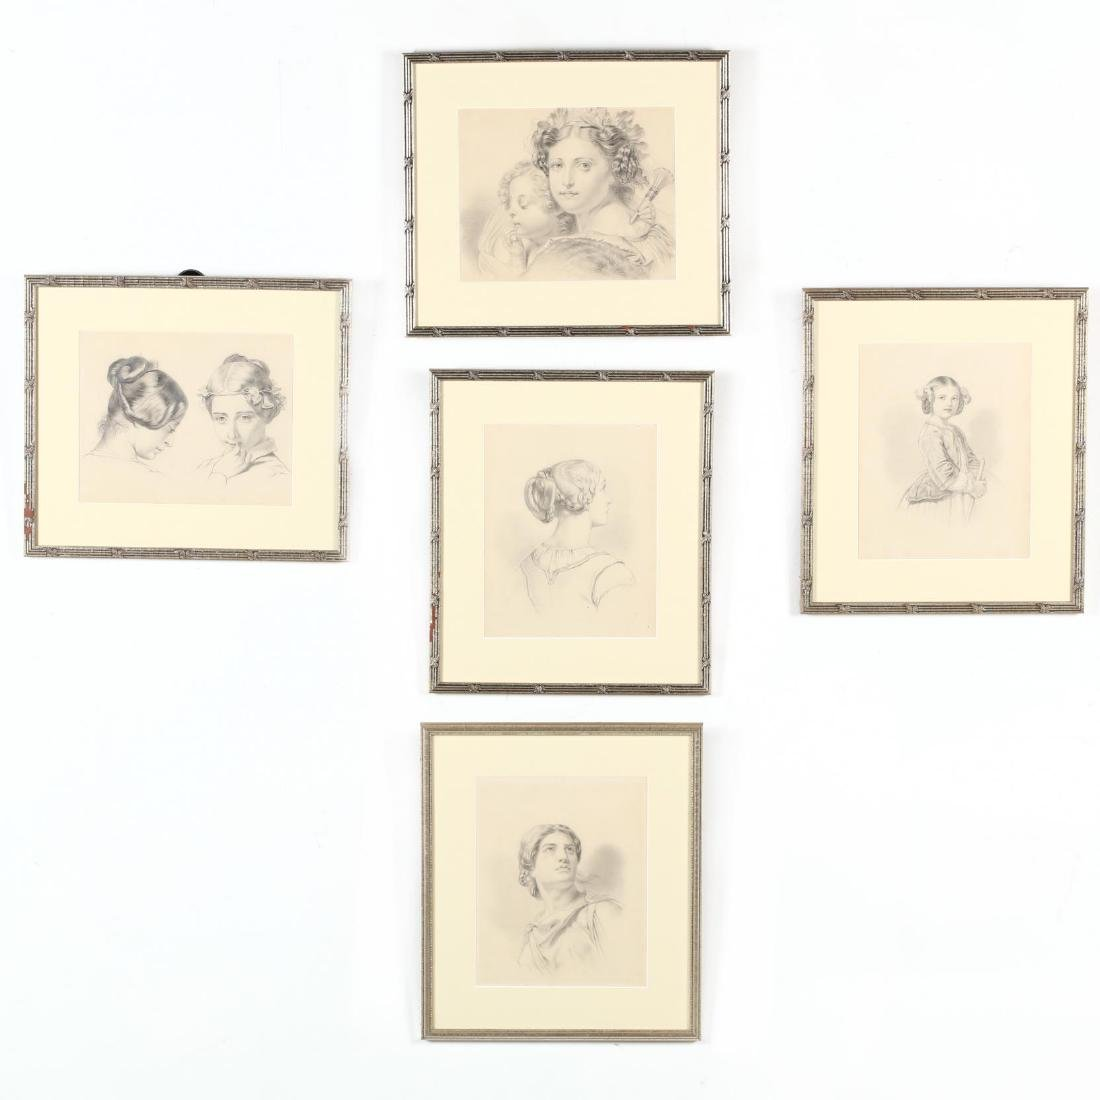 Peter Calvi, Jr. (NY, 1860-1926), Five Sketches of